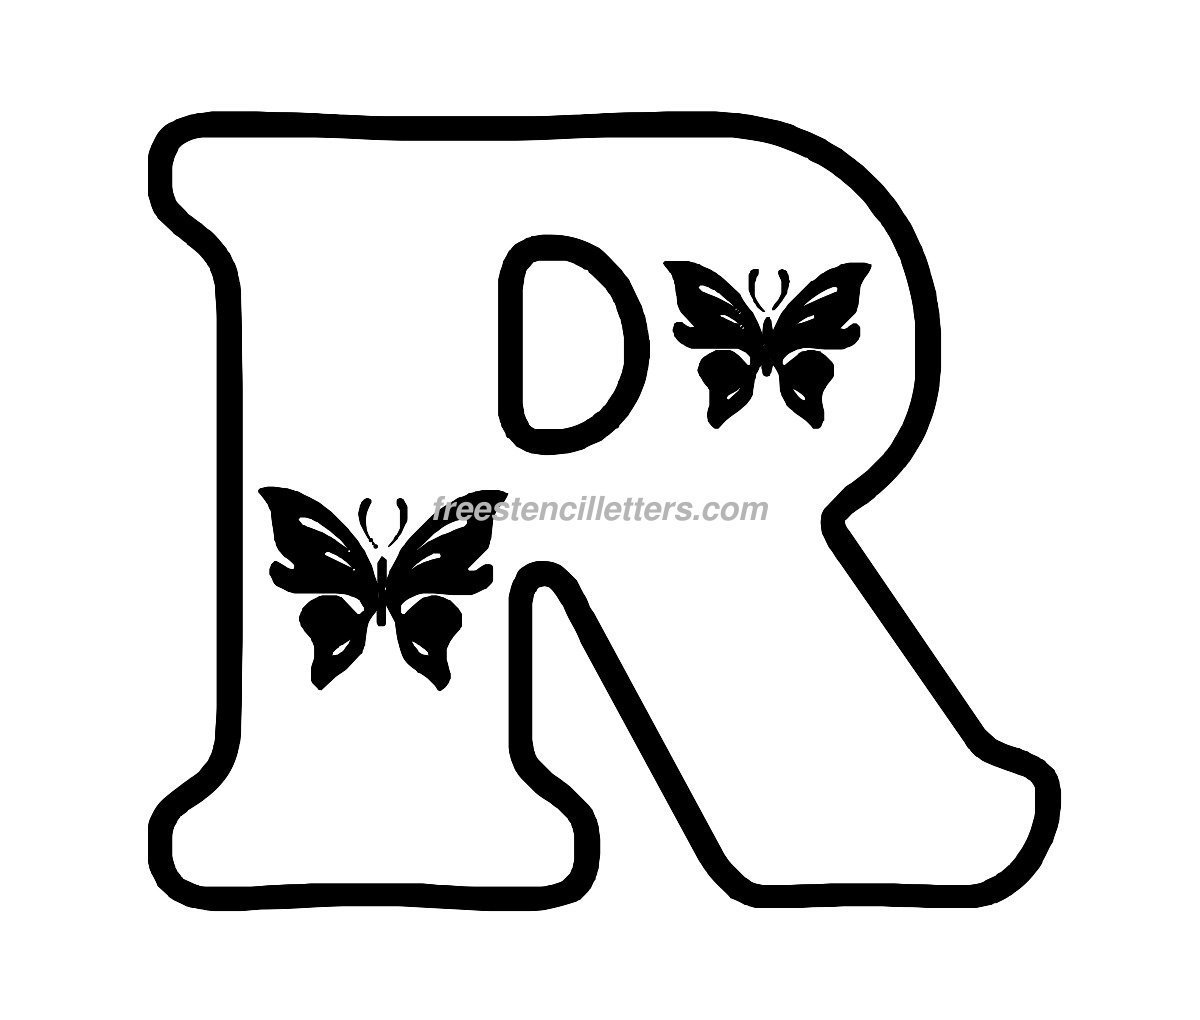 Disegno 214 Lettere 86 as well Graffiti N likewise  additionally Capconstruct Font Printable Graffiti Letters moreover Abc Coloring Pages. on graffiti letter n